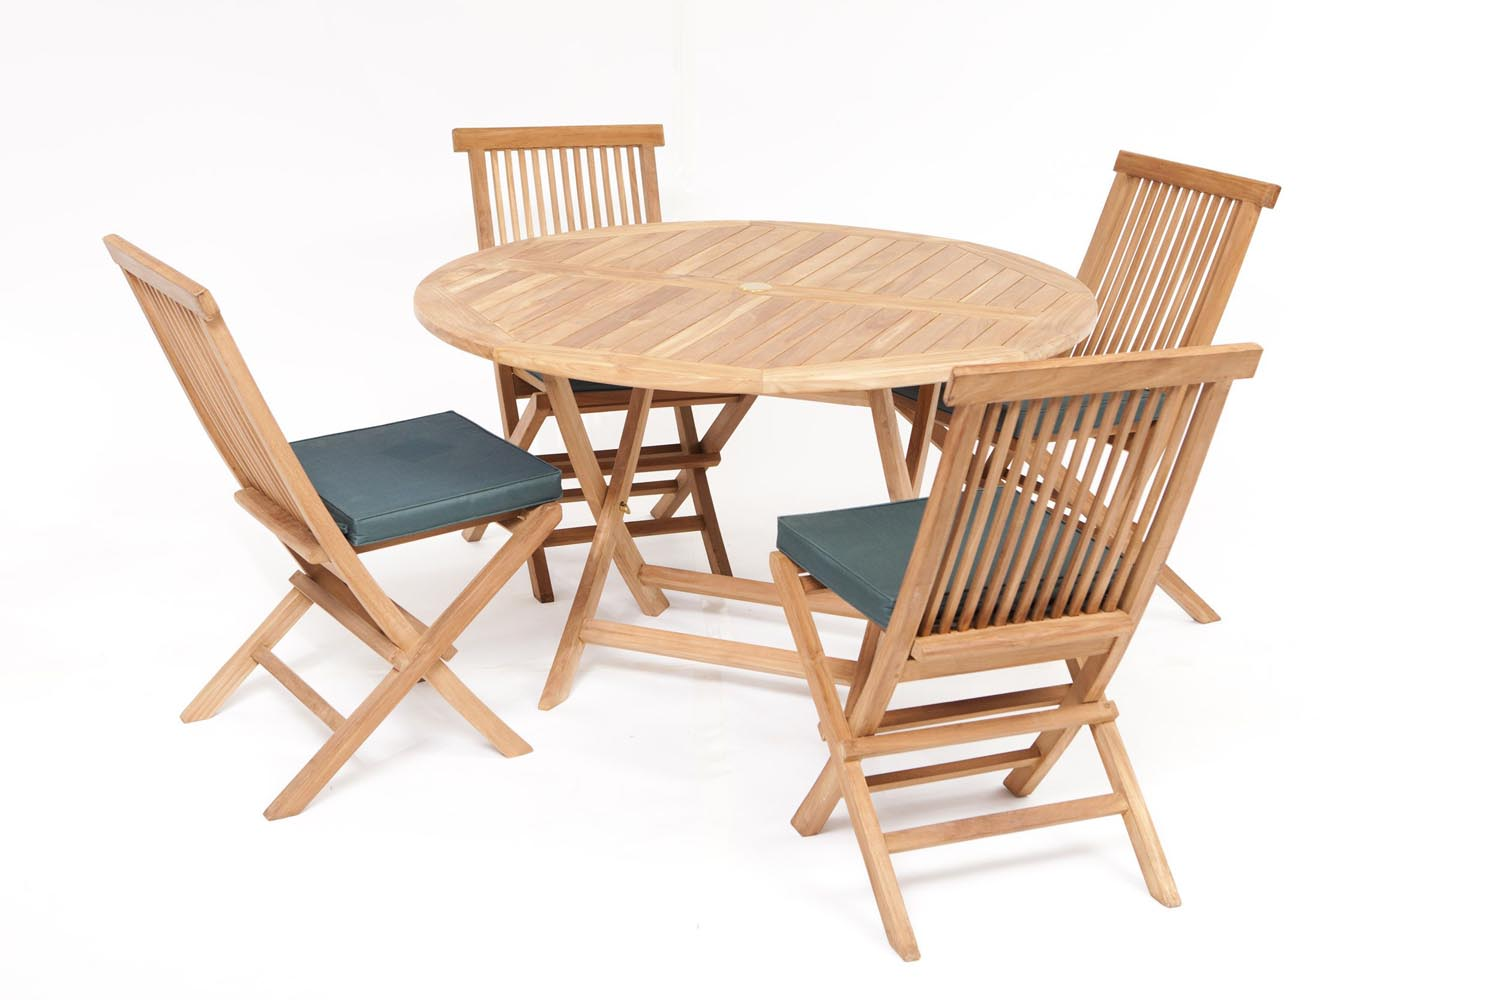 https://www.firstfurniture.co.uk/pub/media/catalog/product/2/5/2500x1666_1468231623ht30salernoroundfolding2.jpg